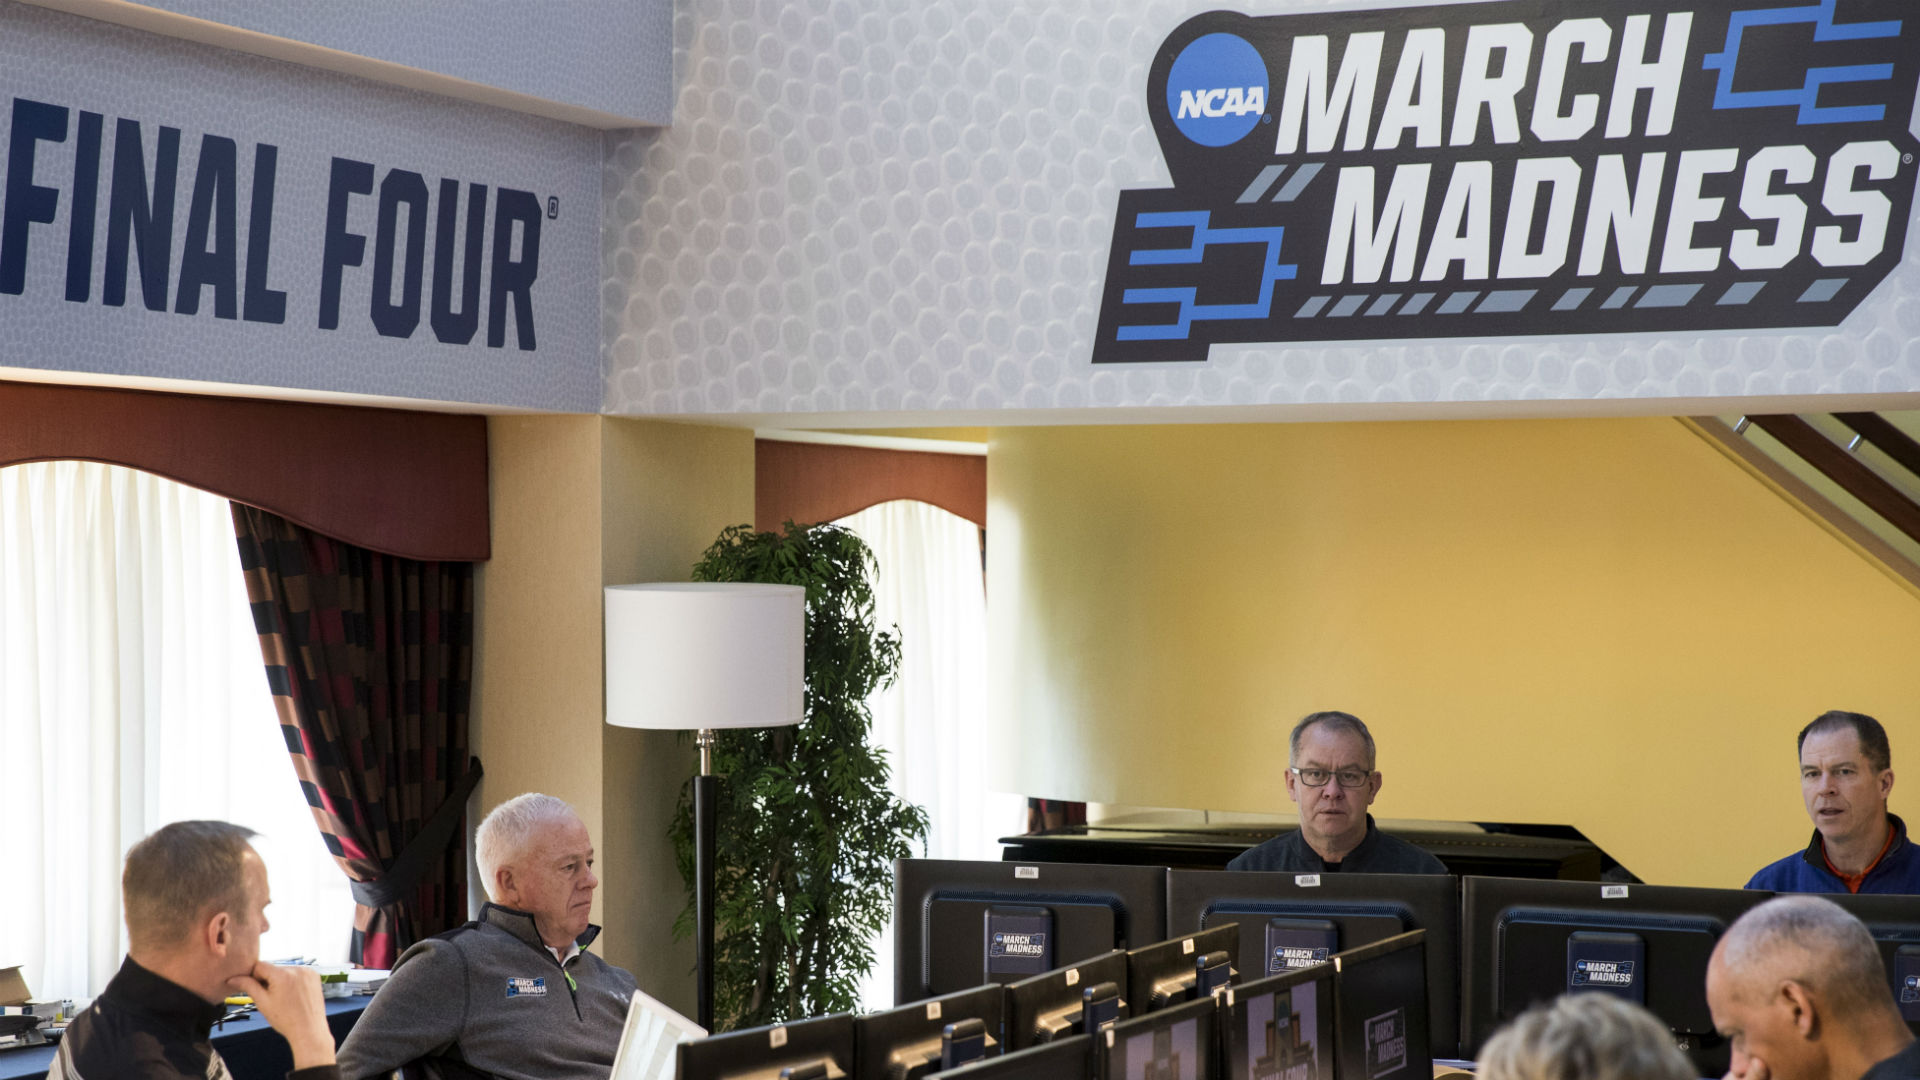 When are the NCAA tournament brackets announced?